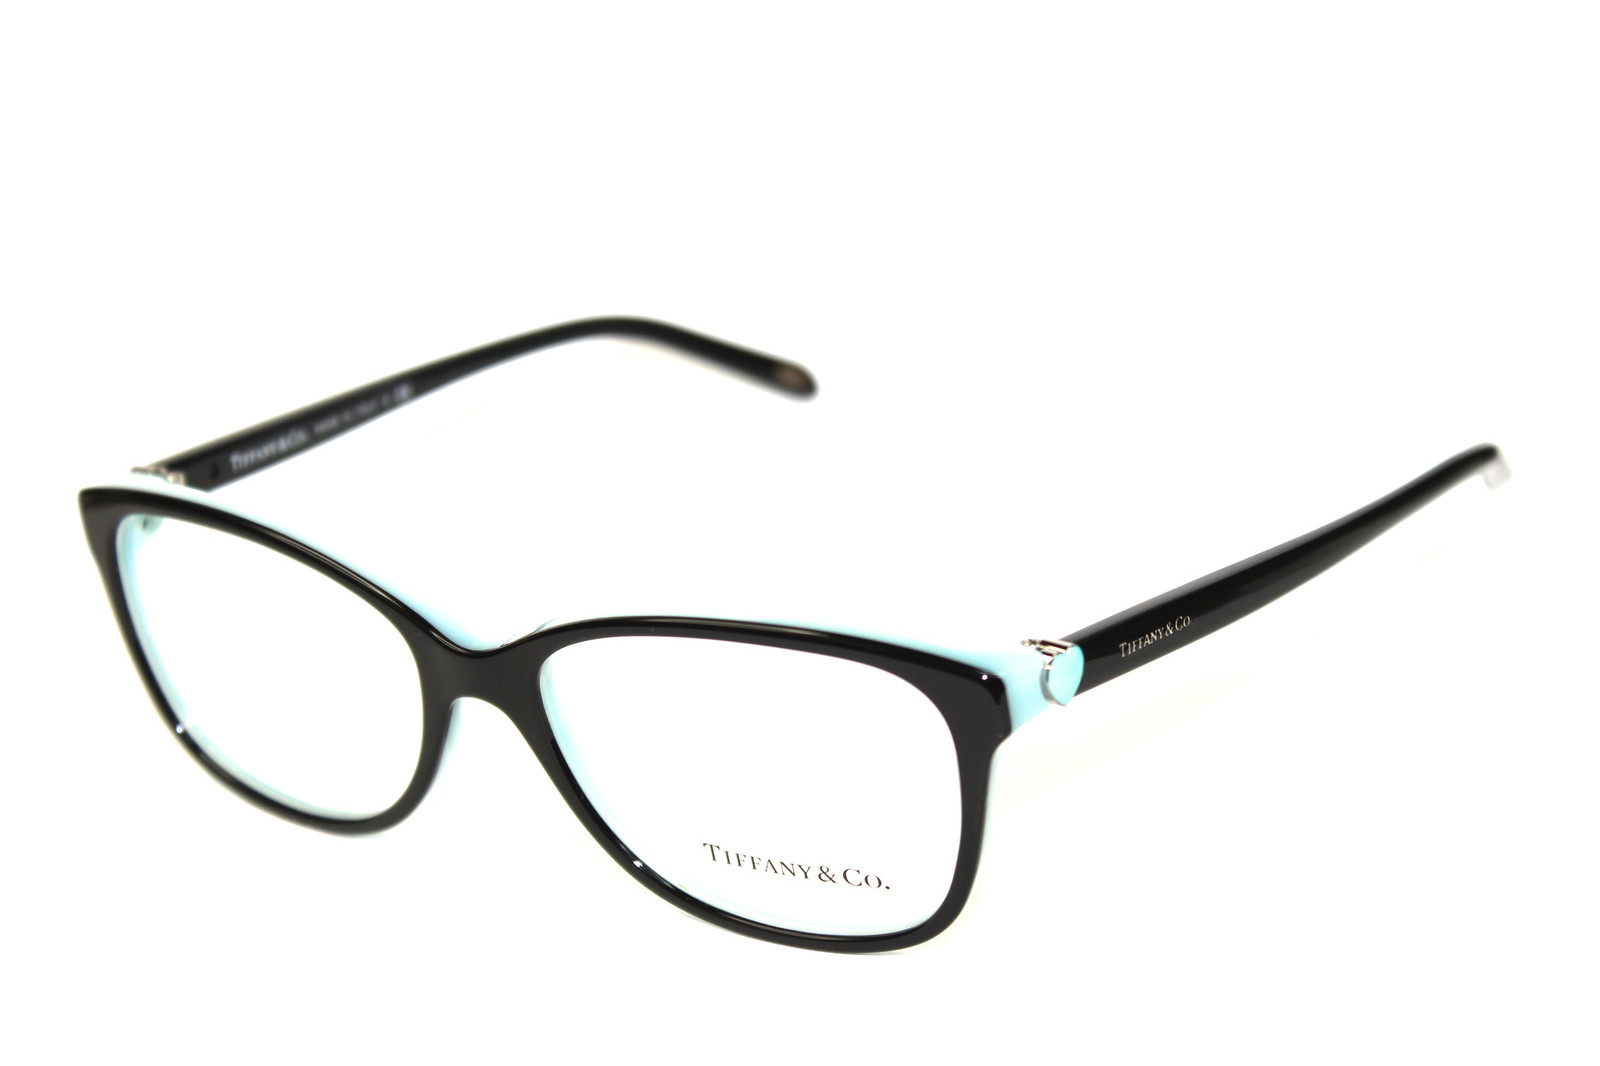 Tiffany Glasses Frames New York : New Authentic Tiffany & Co. TF2097 8055 Black Blue ...